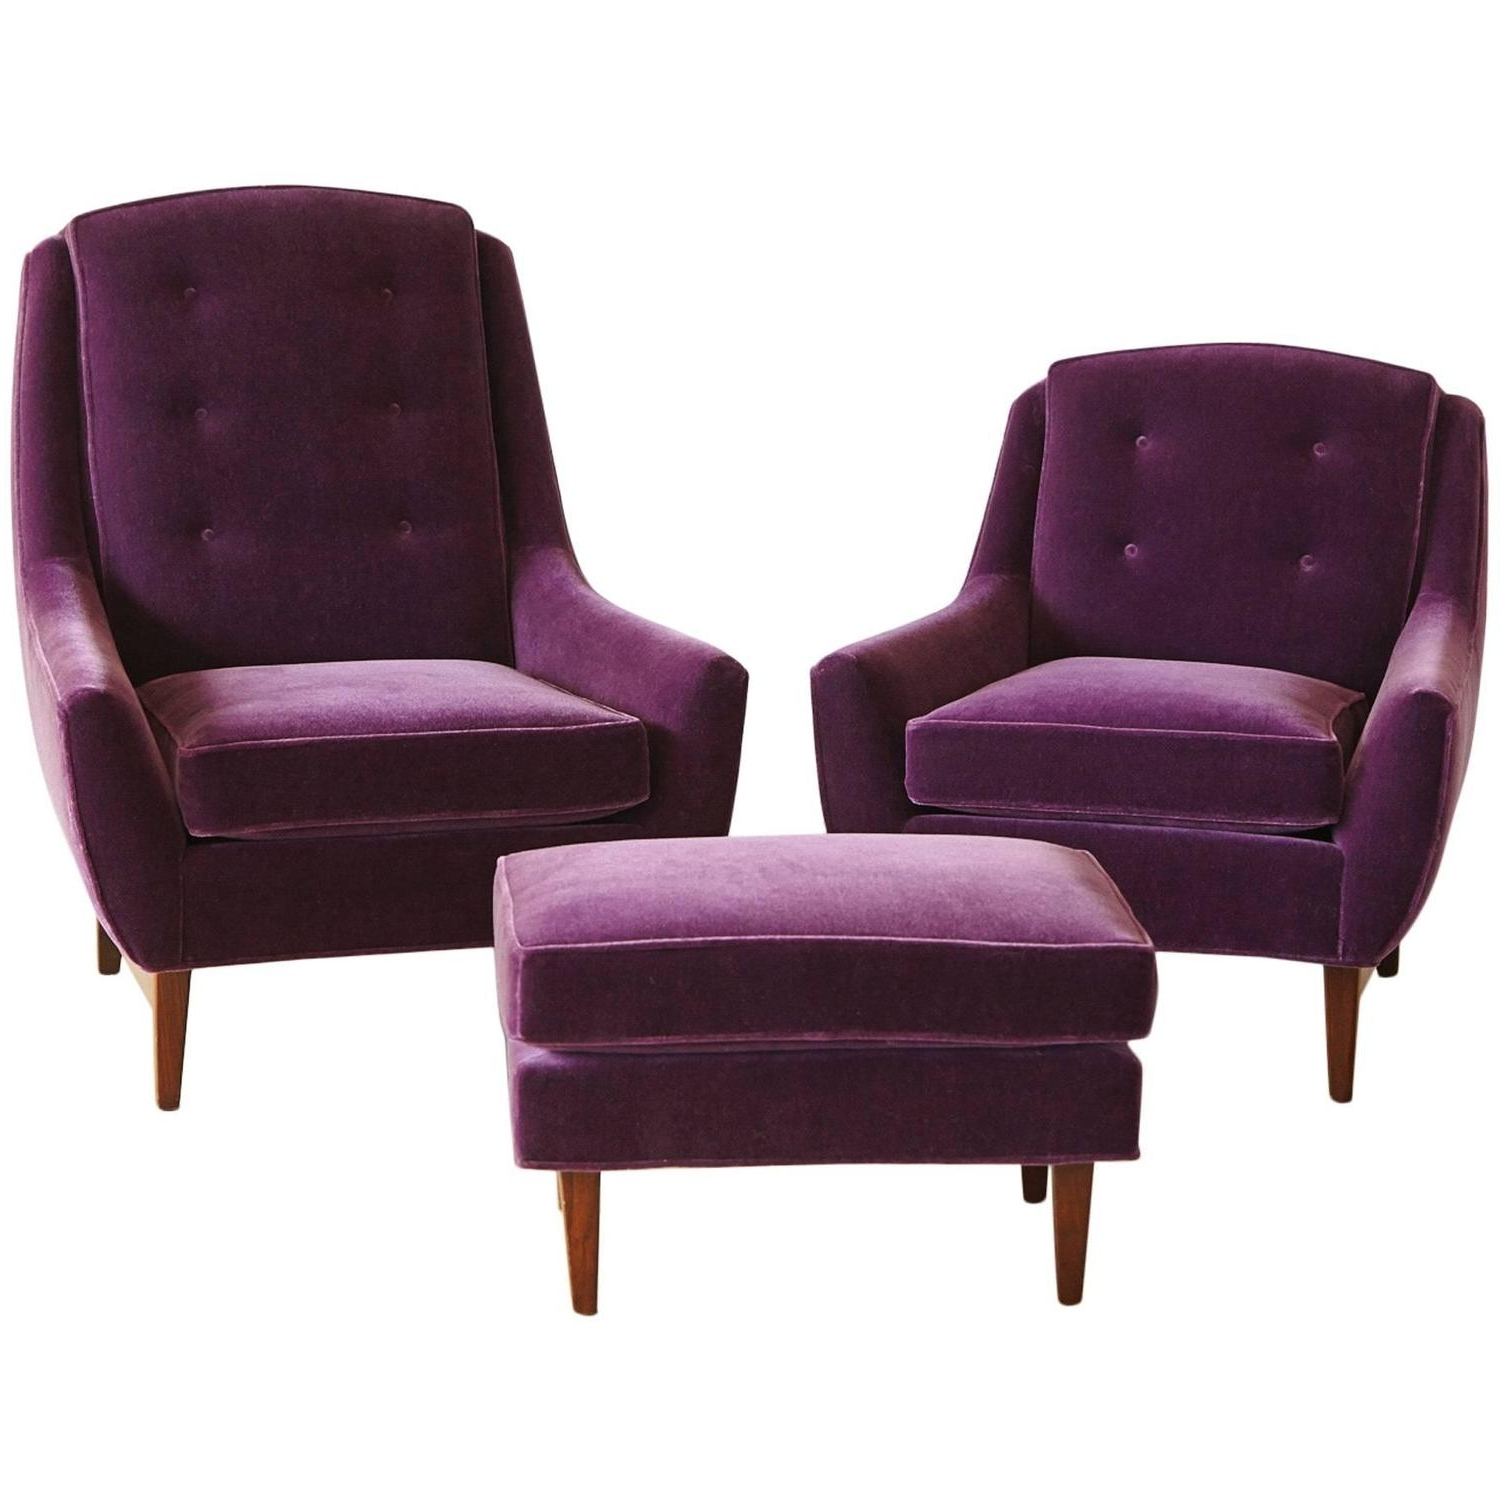 Chaise Lounge Chairs With Ottoman Inside Most Current Convertible Chair : Chairs Living Room Purple Chaise Lounge Sale (View 15 of 15)